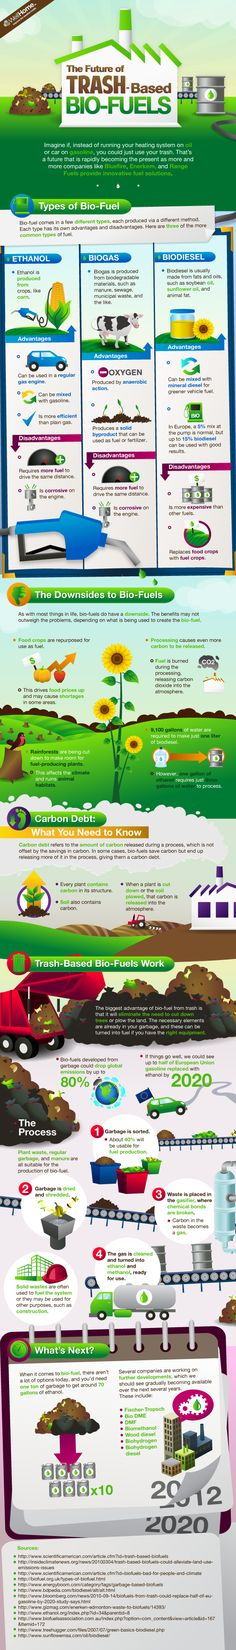 There are different types of trash-based bio-fuels, to learn about them and their pros and cons take a look below #GreenFuelEthanol-ASustainableSolution